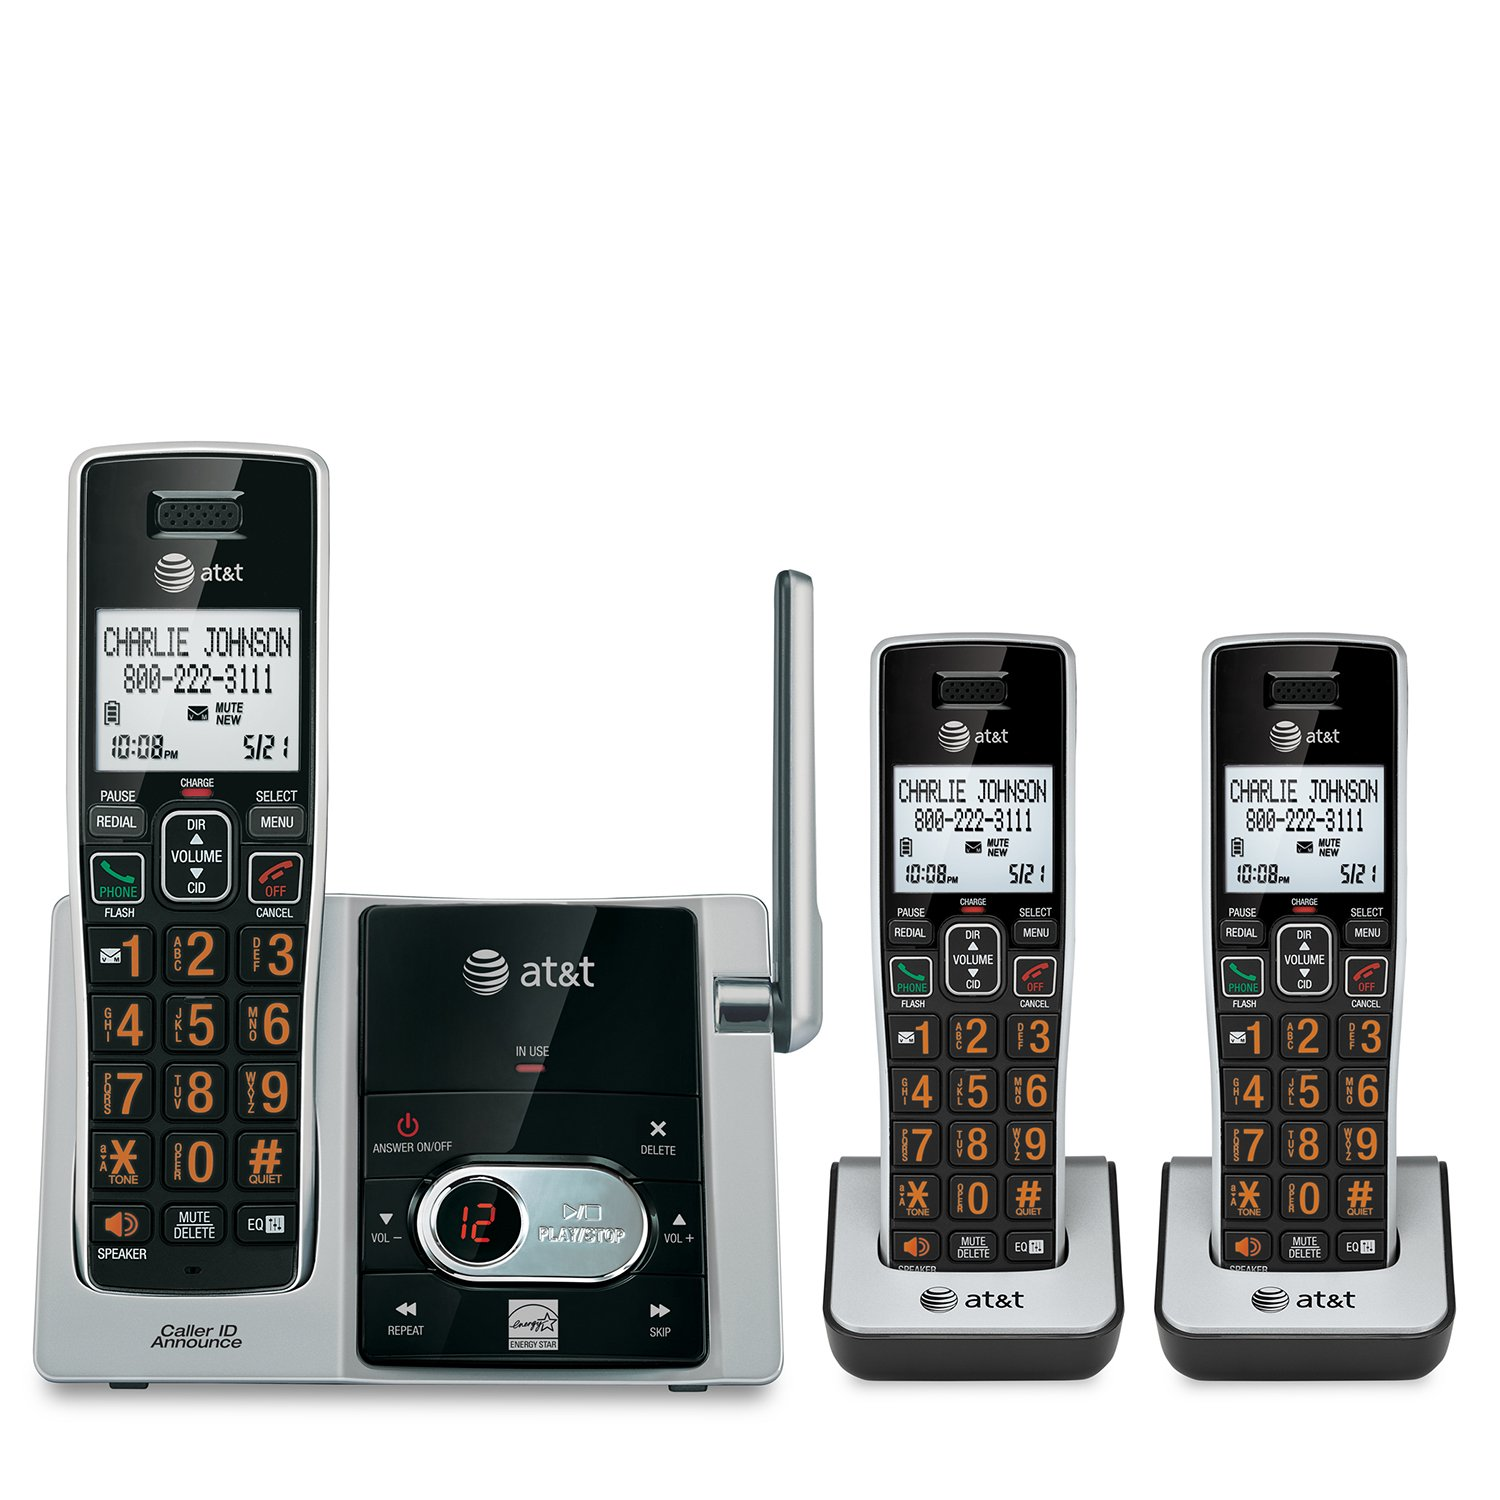 At&t Cl82313 Dect 6.0 Cordless Phone - Cordless - 1 X Phone Line - 2 X Handset - Speakerphone - Answering Machine - Caller Id - Hearing Aid Compatible (cl82313)